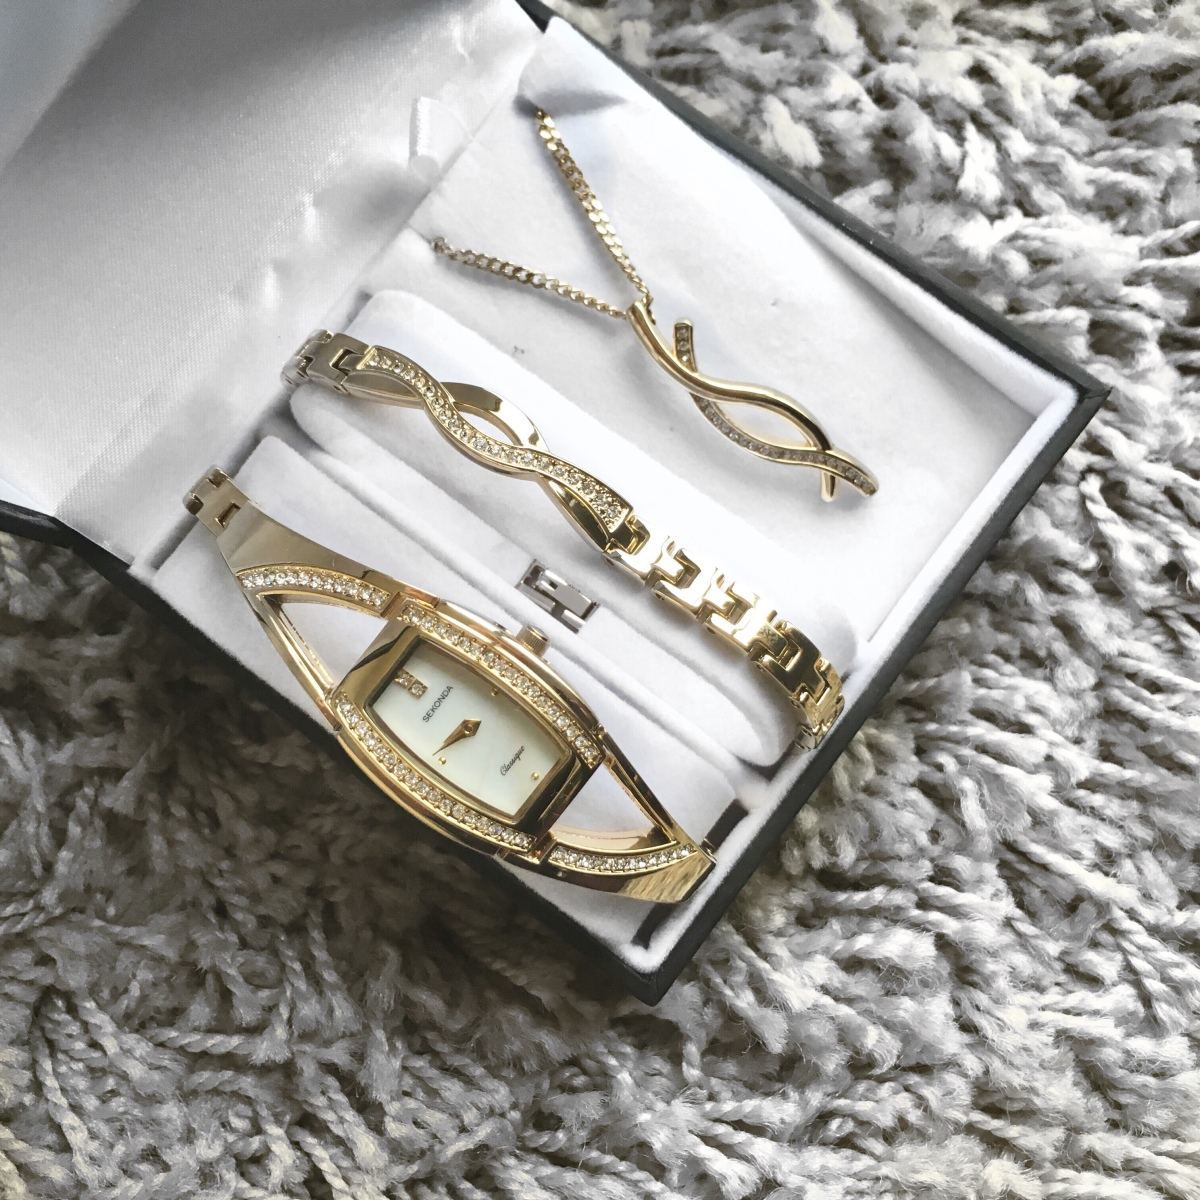 Argos Jewellery | The Mother's Day gift you probably forgot to consider